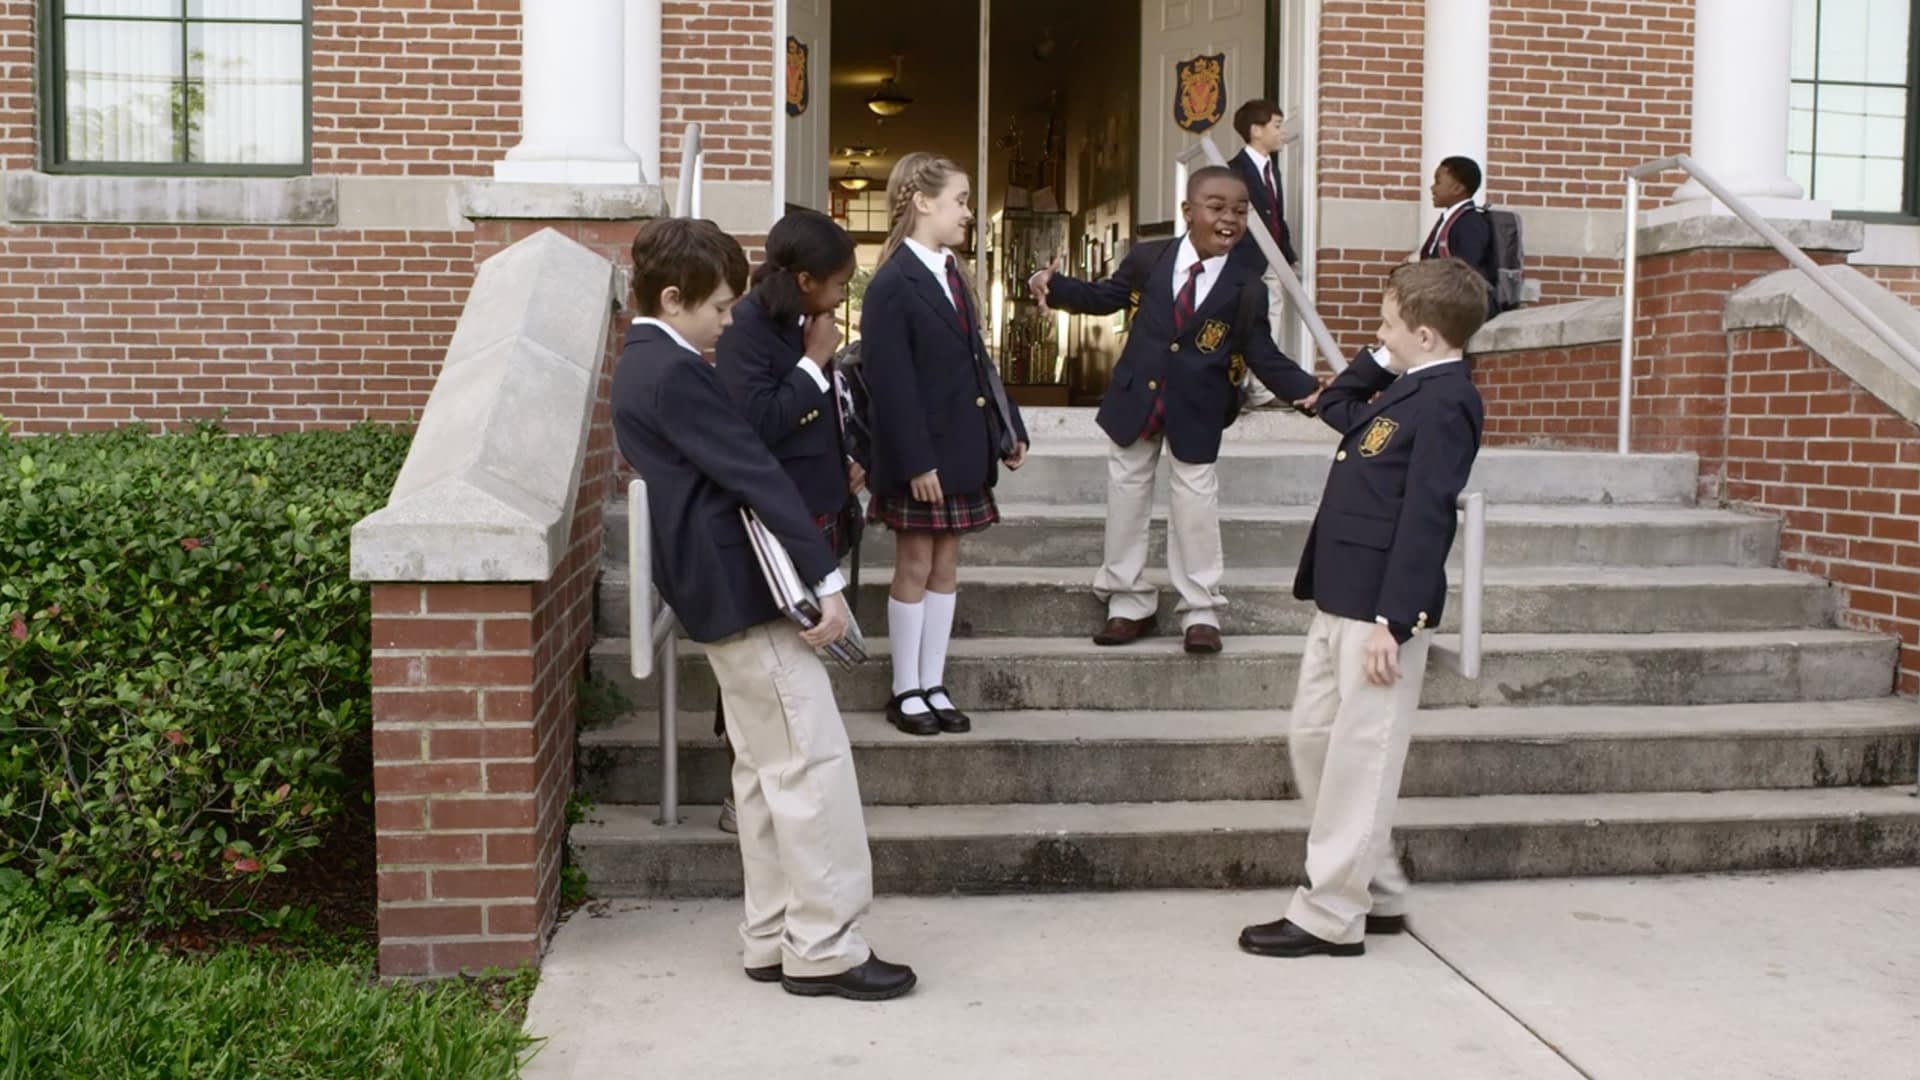 Six children standing on the steps of their school in uniform.